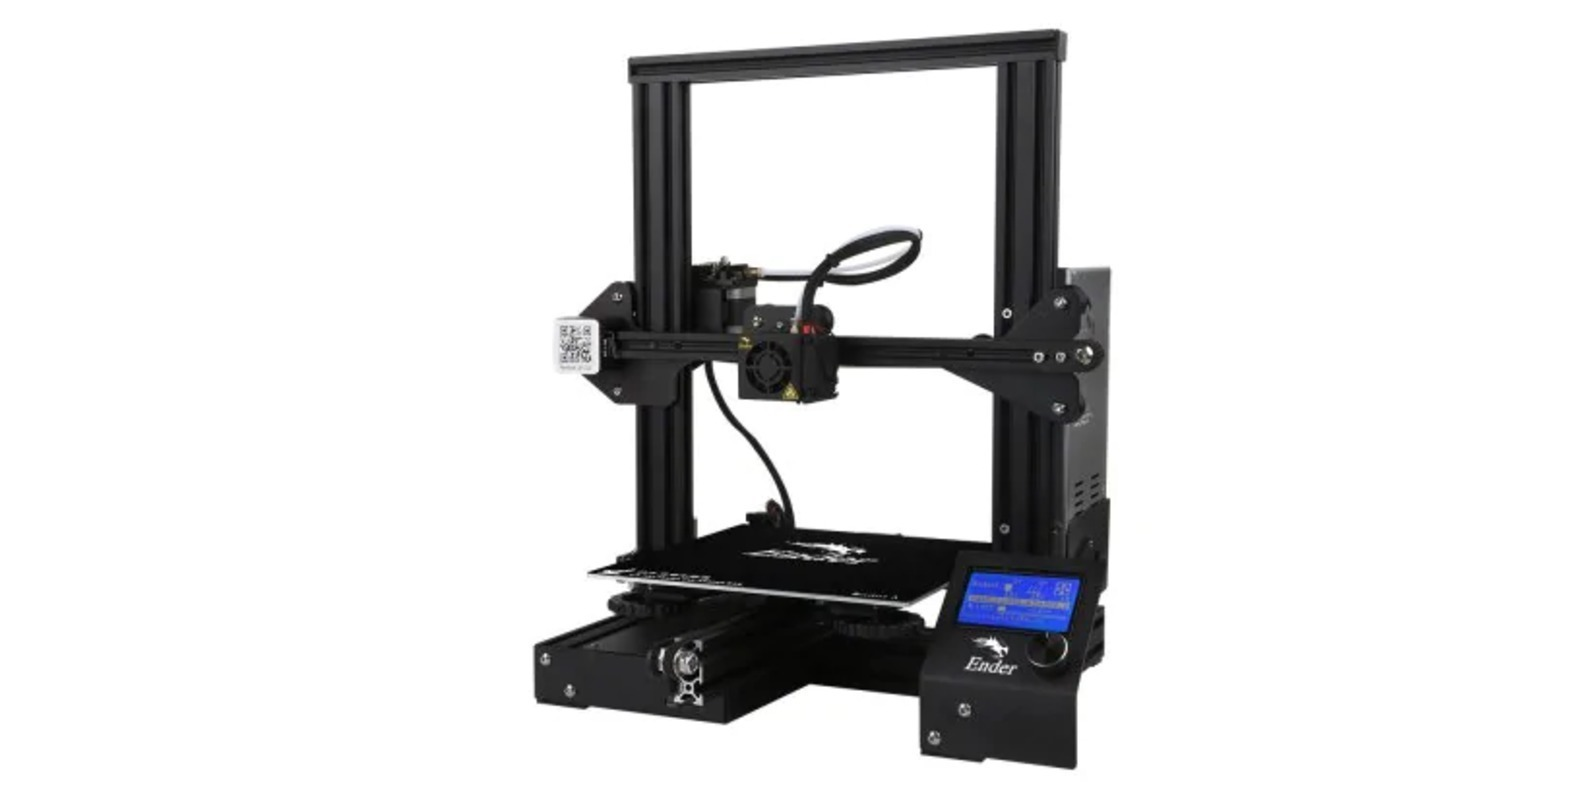 Creality3D 3D printer reviews